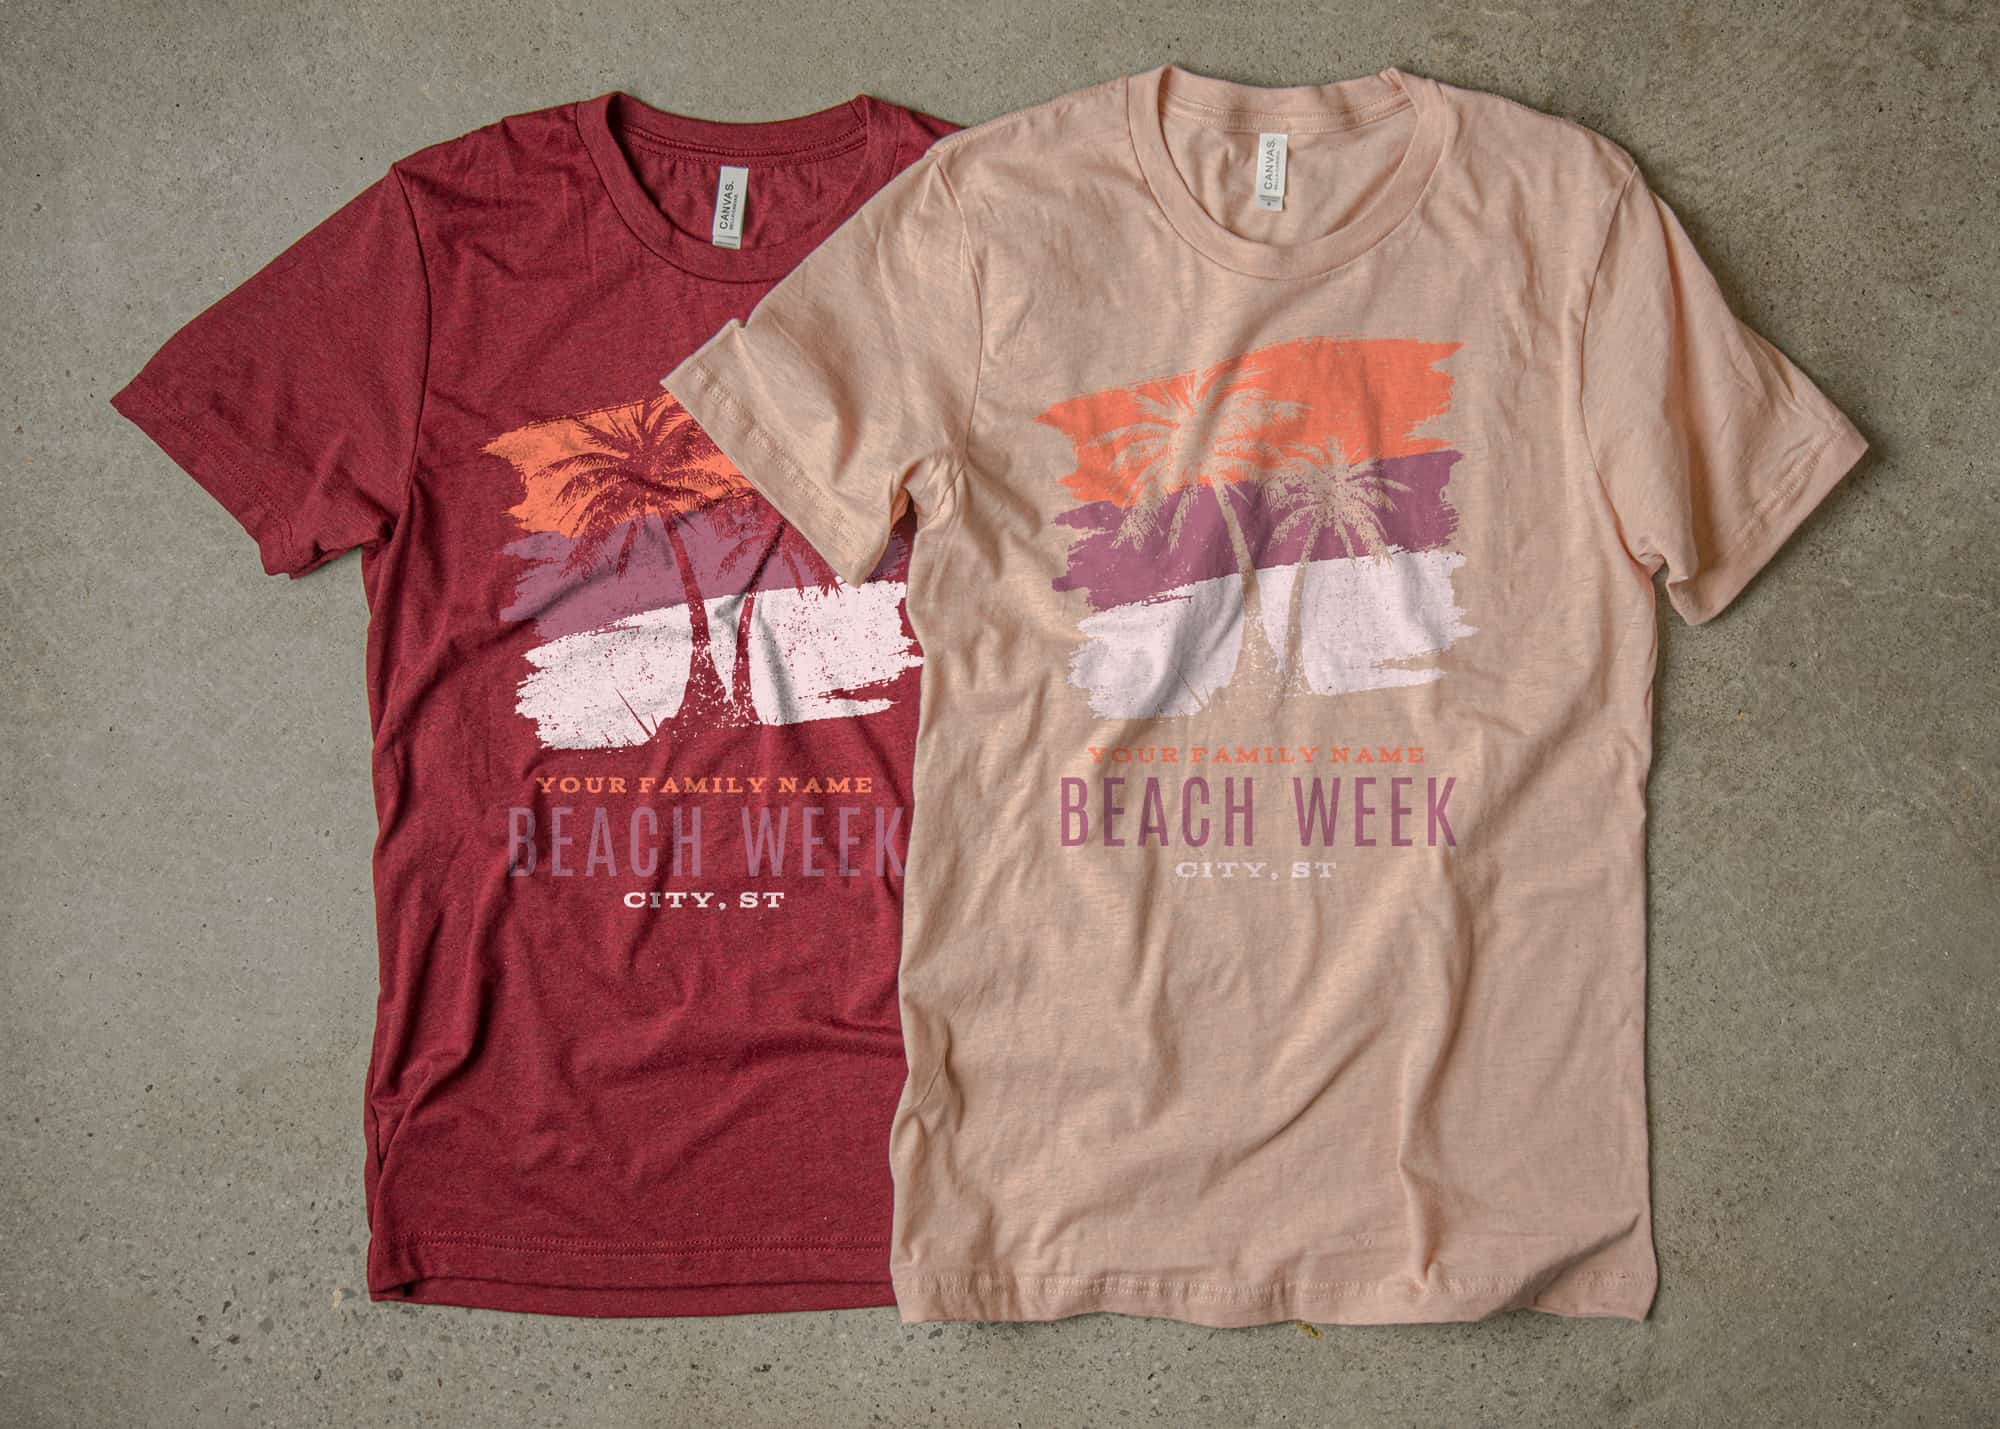 Two family beach vacation t-shirt designs made using this color scheme.